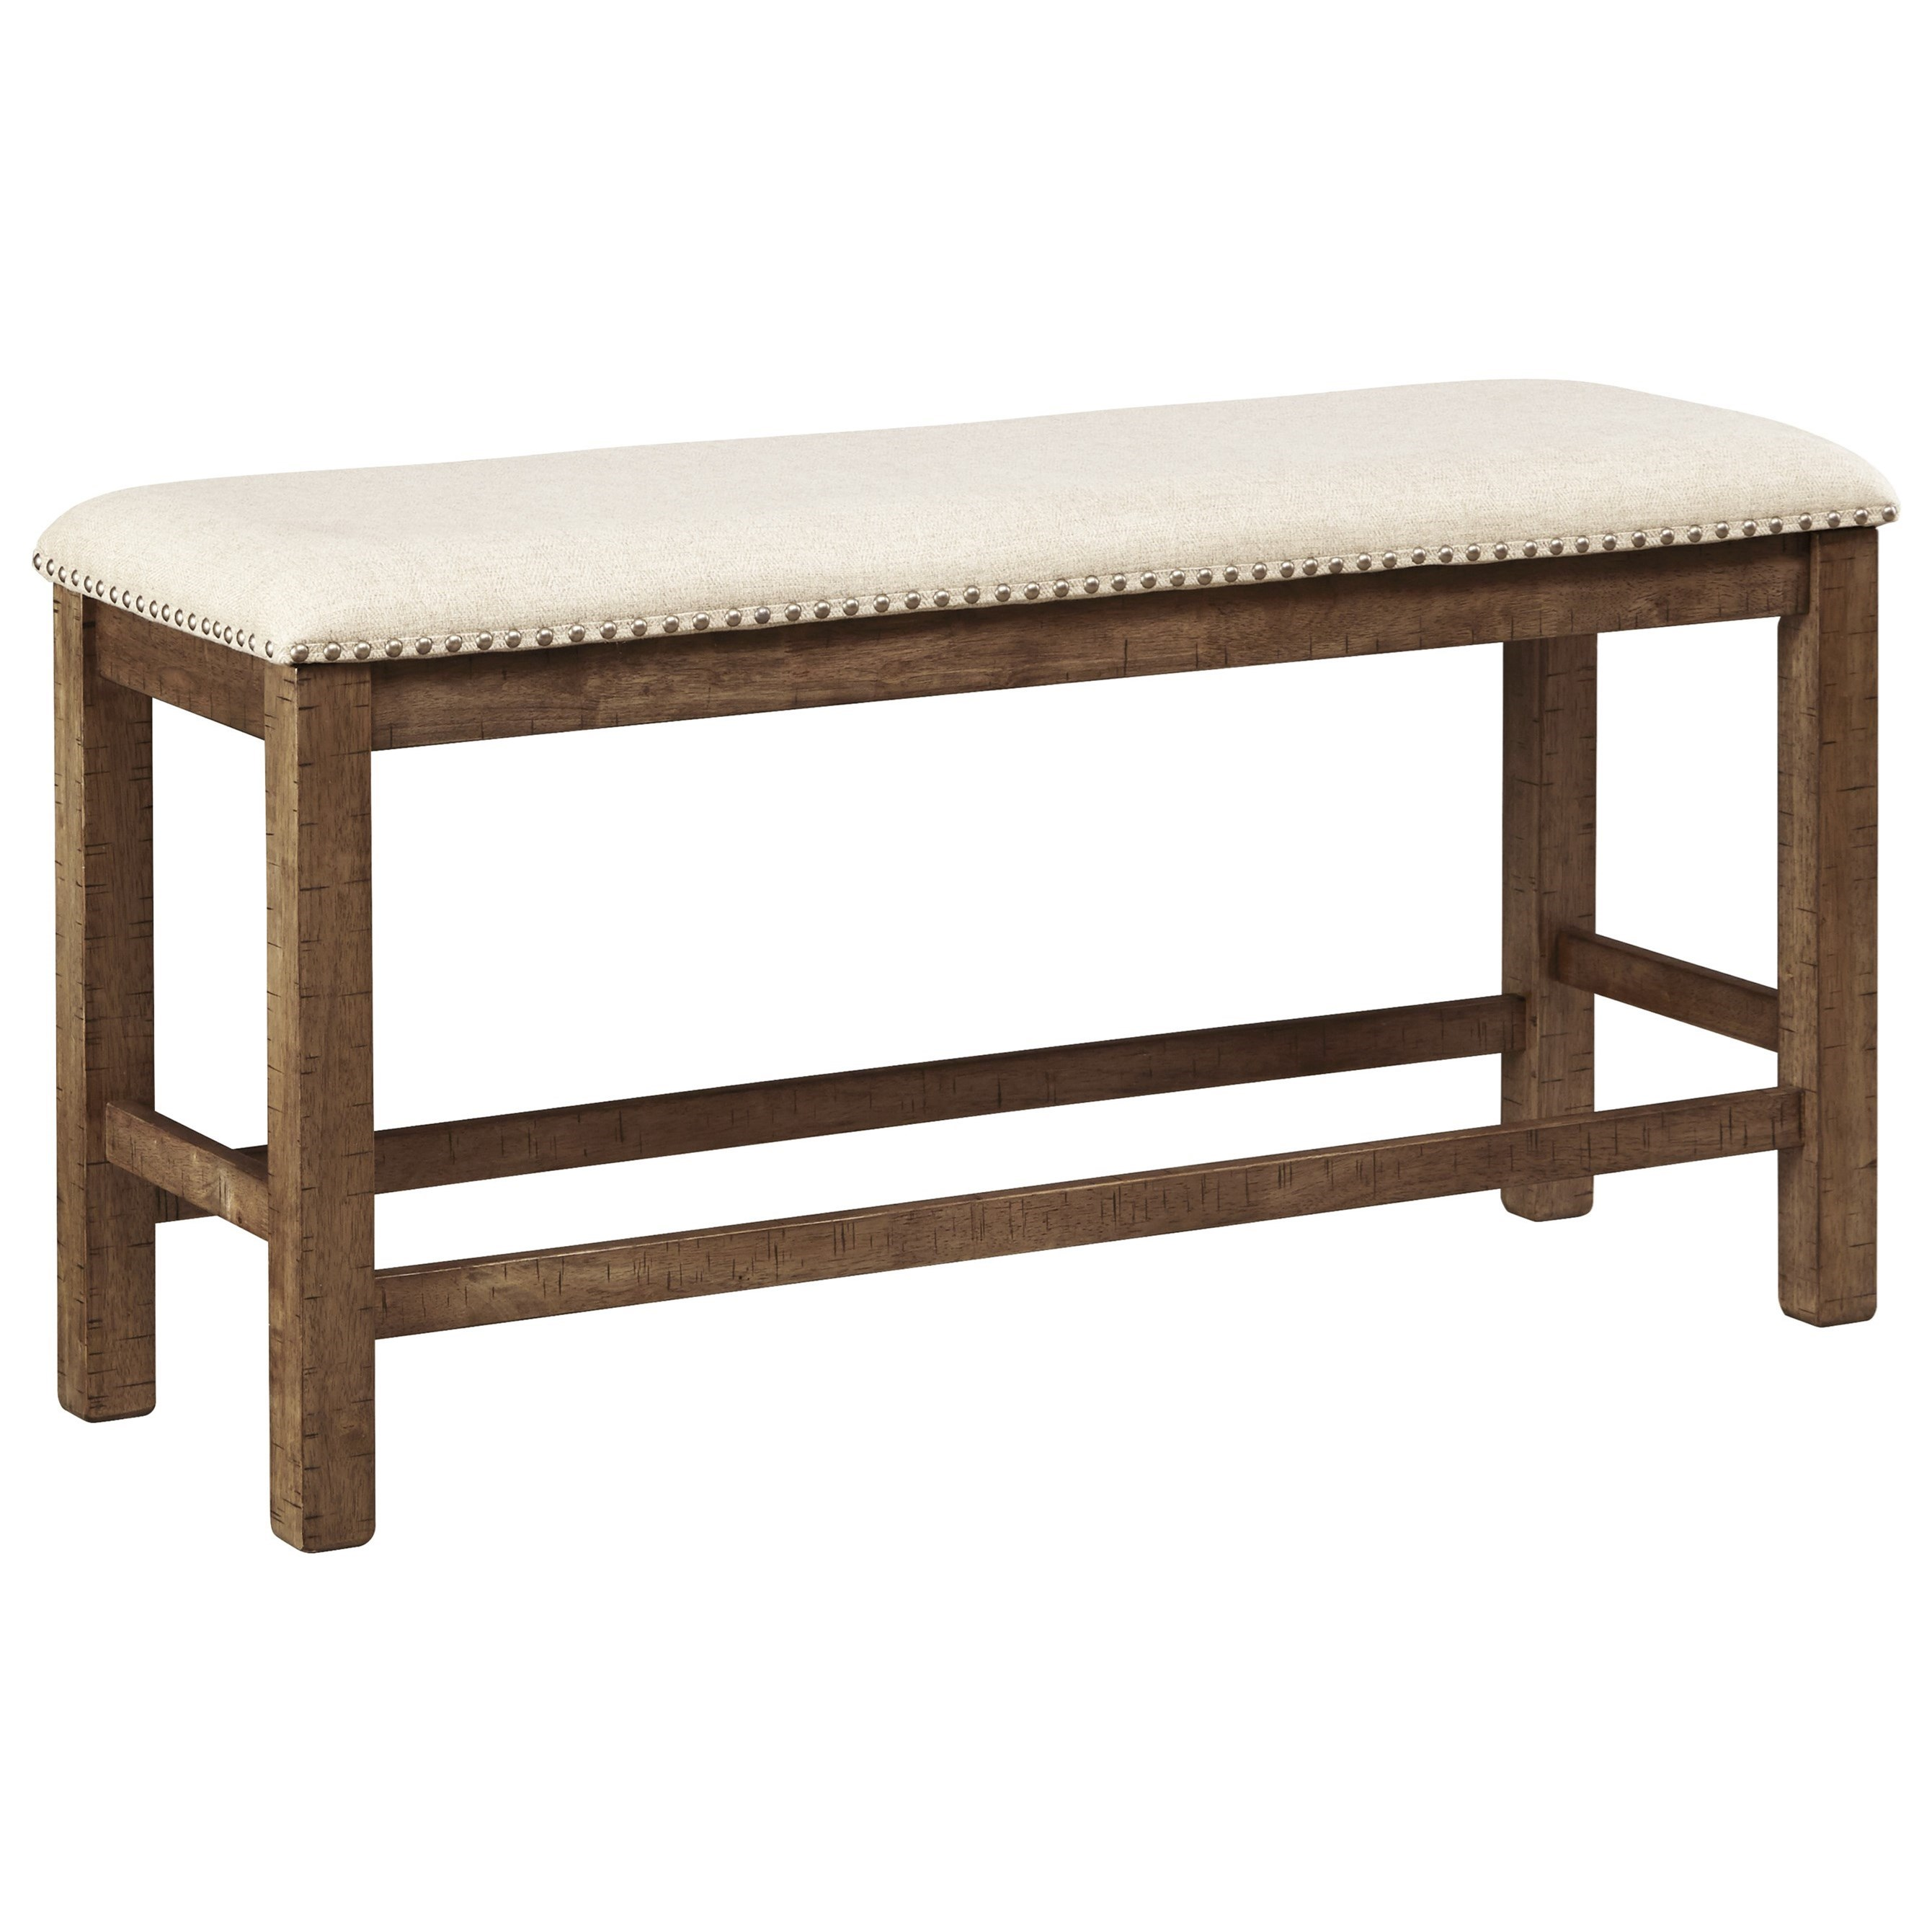 Double Upholstered Bench